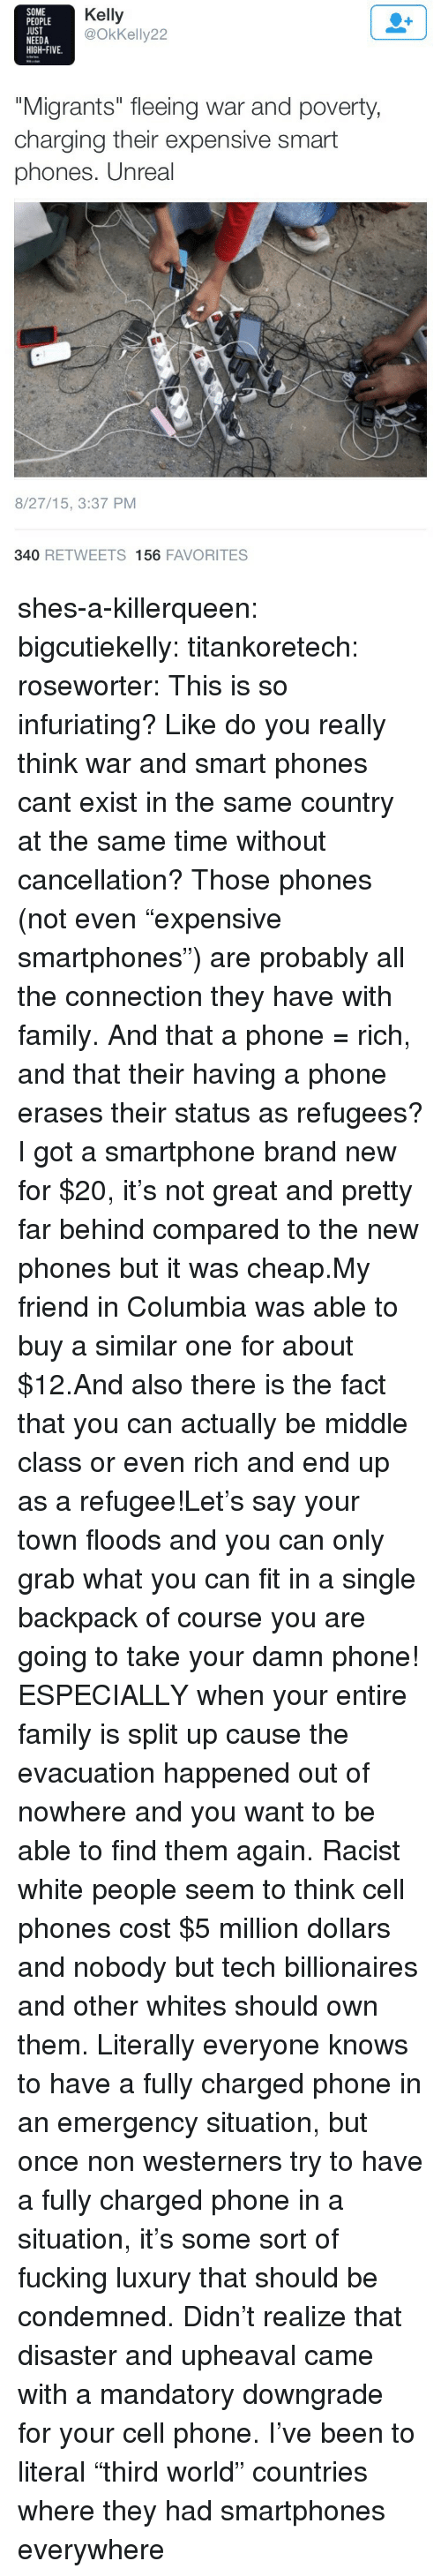 """smartphones: SOME  PEOPLE  UST  NEEDA  HIGH-FIVE.  Kelly  @OkKelly22  """"Migrants"""" fleeing war and poverty  charging their expensive smart  phones. Unreal  8/27/15, 3:37 PM  340 RETWEETS 156 FAVORITES shes-a-killerqueen: bigcutiekelly:  titankoretech:  roseworter:  This is so infuriating? Like do you really think war and smart phones cant exist in the same country at the same time without cancellation? Those phones (not even """"expensive smartphones"""") are probably all the connection they have with family. And that a phone = rich, and that their having a phone erases their status as refugees?  I got a smartphone brand new for $20, it's not great and pretty far behind compared to the new phones but it was cheap.My friend in Columbia was able to buy a similar one for about $12.And also there is the fact that you can actually be middle class or even rich and end up as a refugee!Let's say your town floods and you can only grab what you can fit in a single backpack of course you are going to take your damn phone! ESPECIALLY when your entire family is split up cause the evacuation happened out of nowhere and you want to be able to find them again.  Racist white people seem to think cell phones cost $5 million dollars and nobody but tech billionaires and other whites should own them.   Literally everyone knows to have a fully charged phone in an emergency situation, but once non westerners try to have a fully charged phone in a situation, it's some sort of fucking luxury that should be condemned. Didn't realize that disaster and upheaval came with a mandatory downgrade for your cell phone.   I've been to literal """"third world"""" countries where they had smartphones everywhere"""